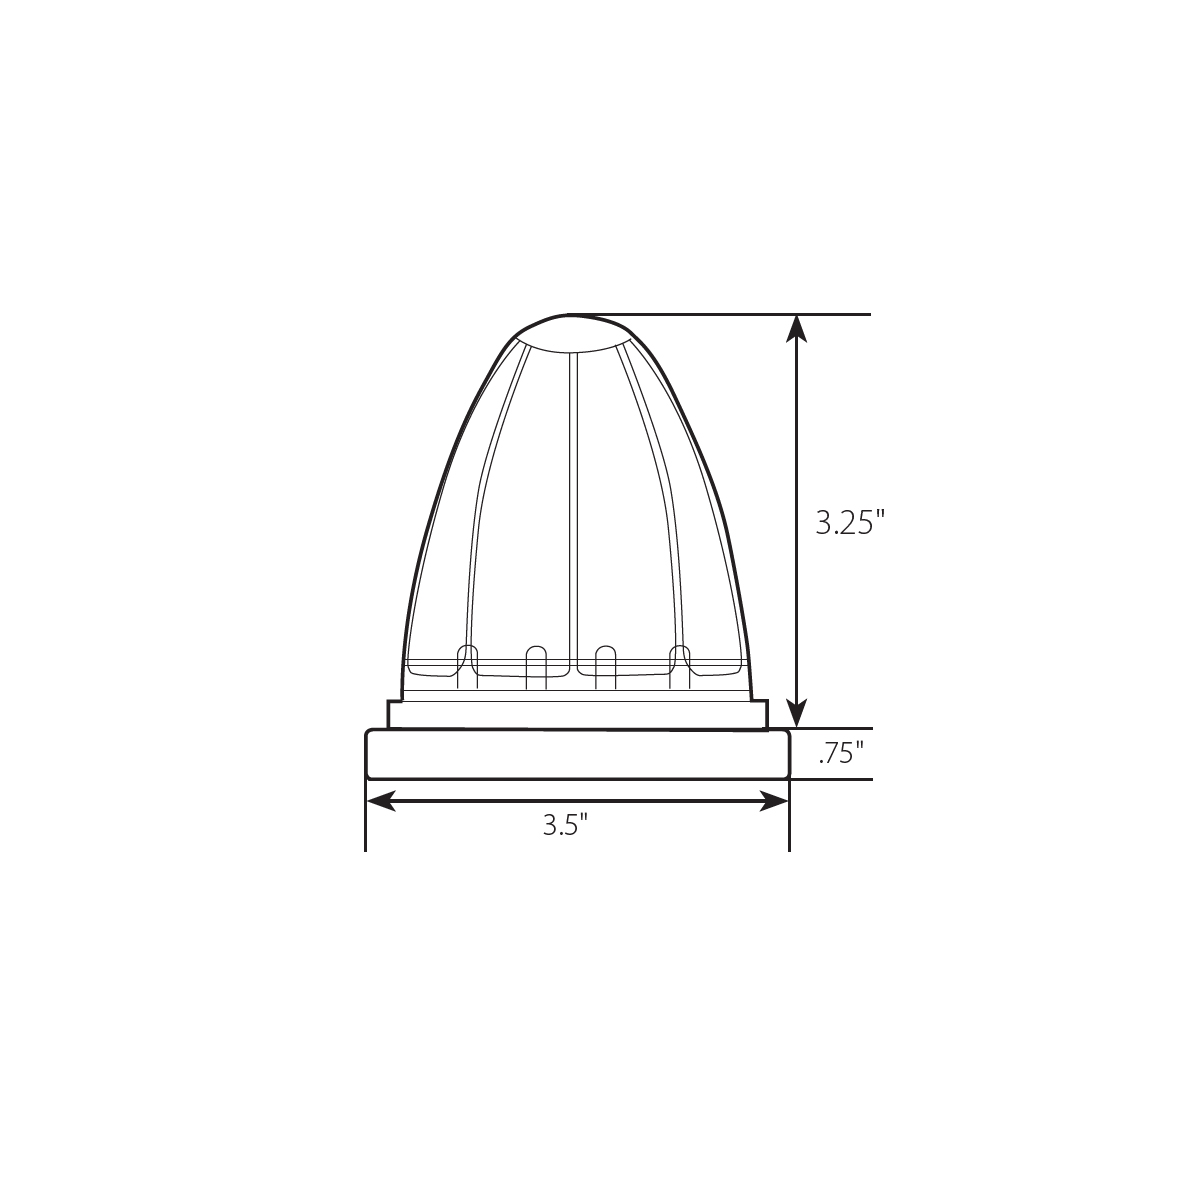 Watermelon Style Surface Mount LED Turn/Marker Light with Bezel - Diagram